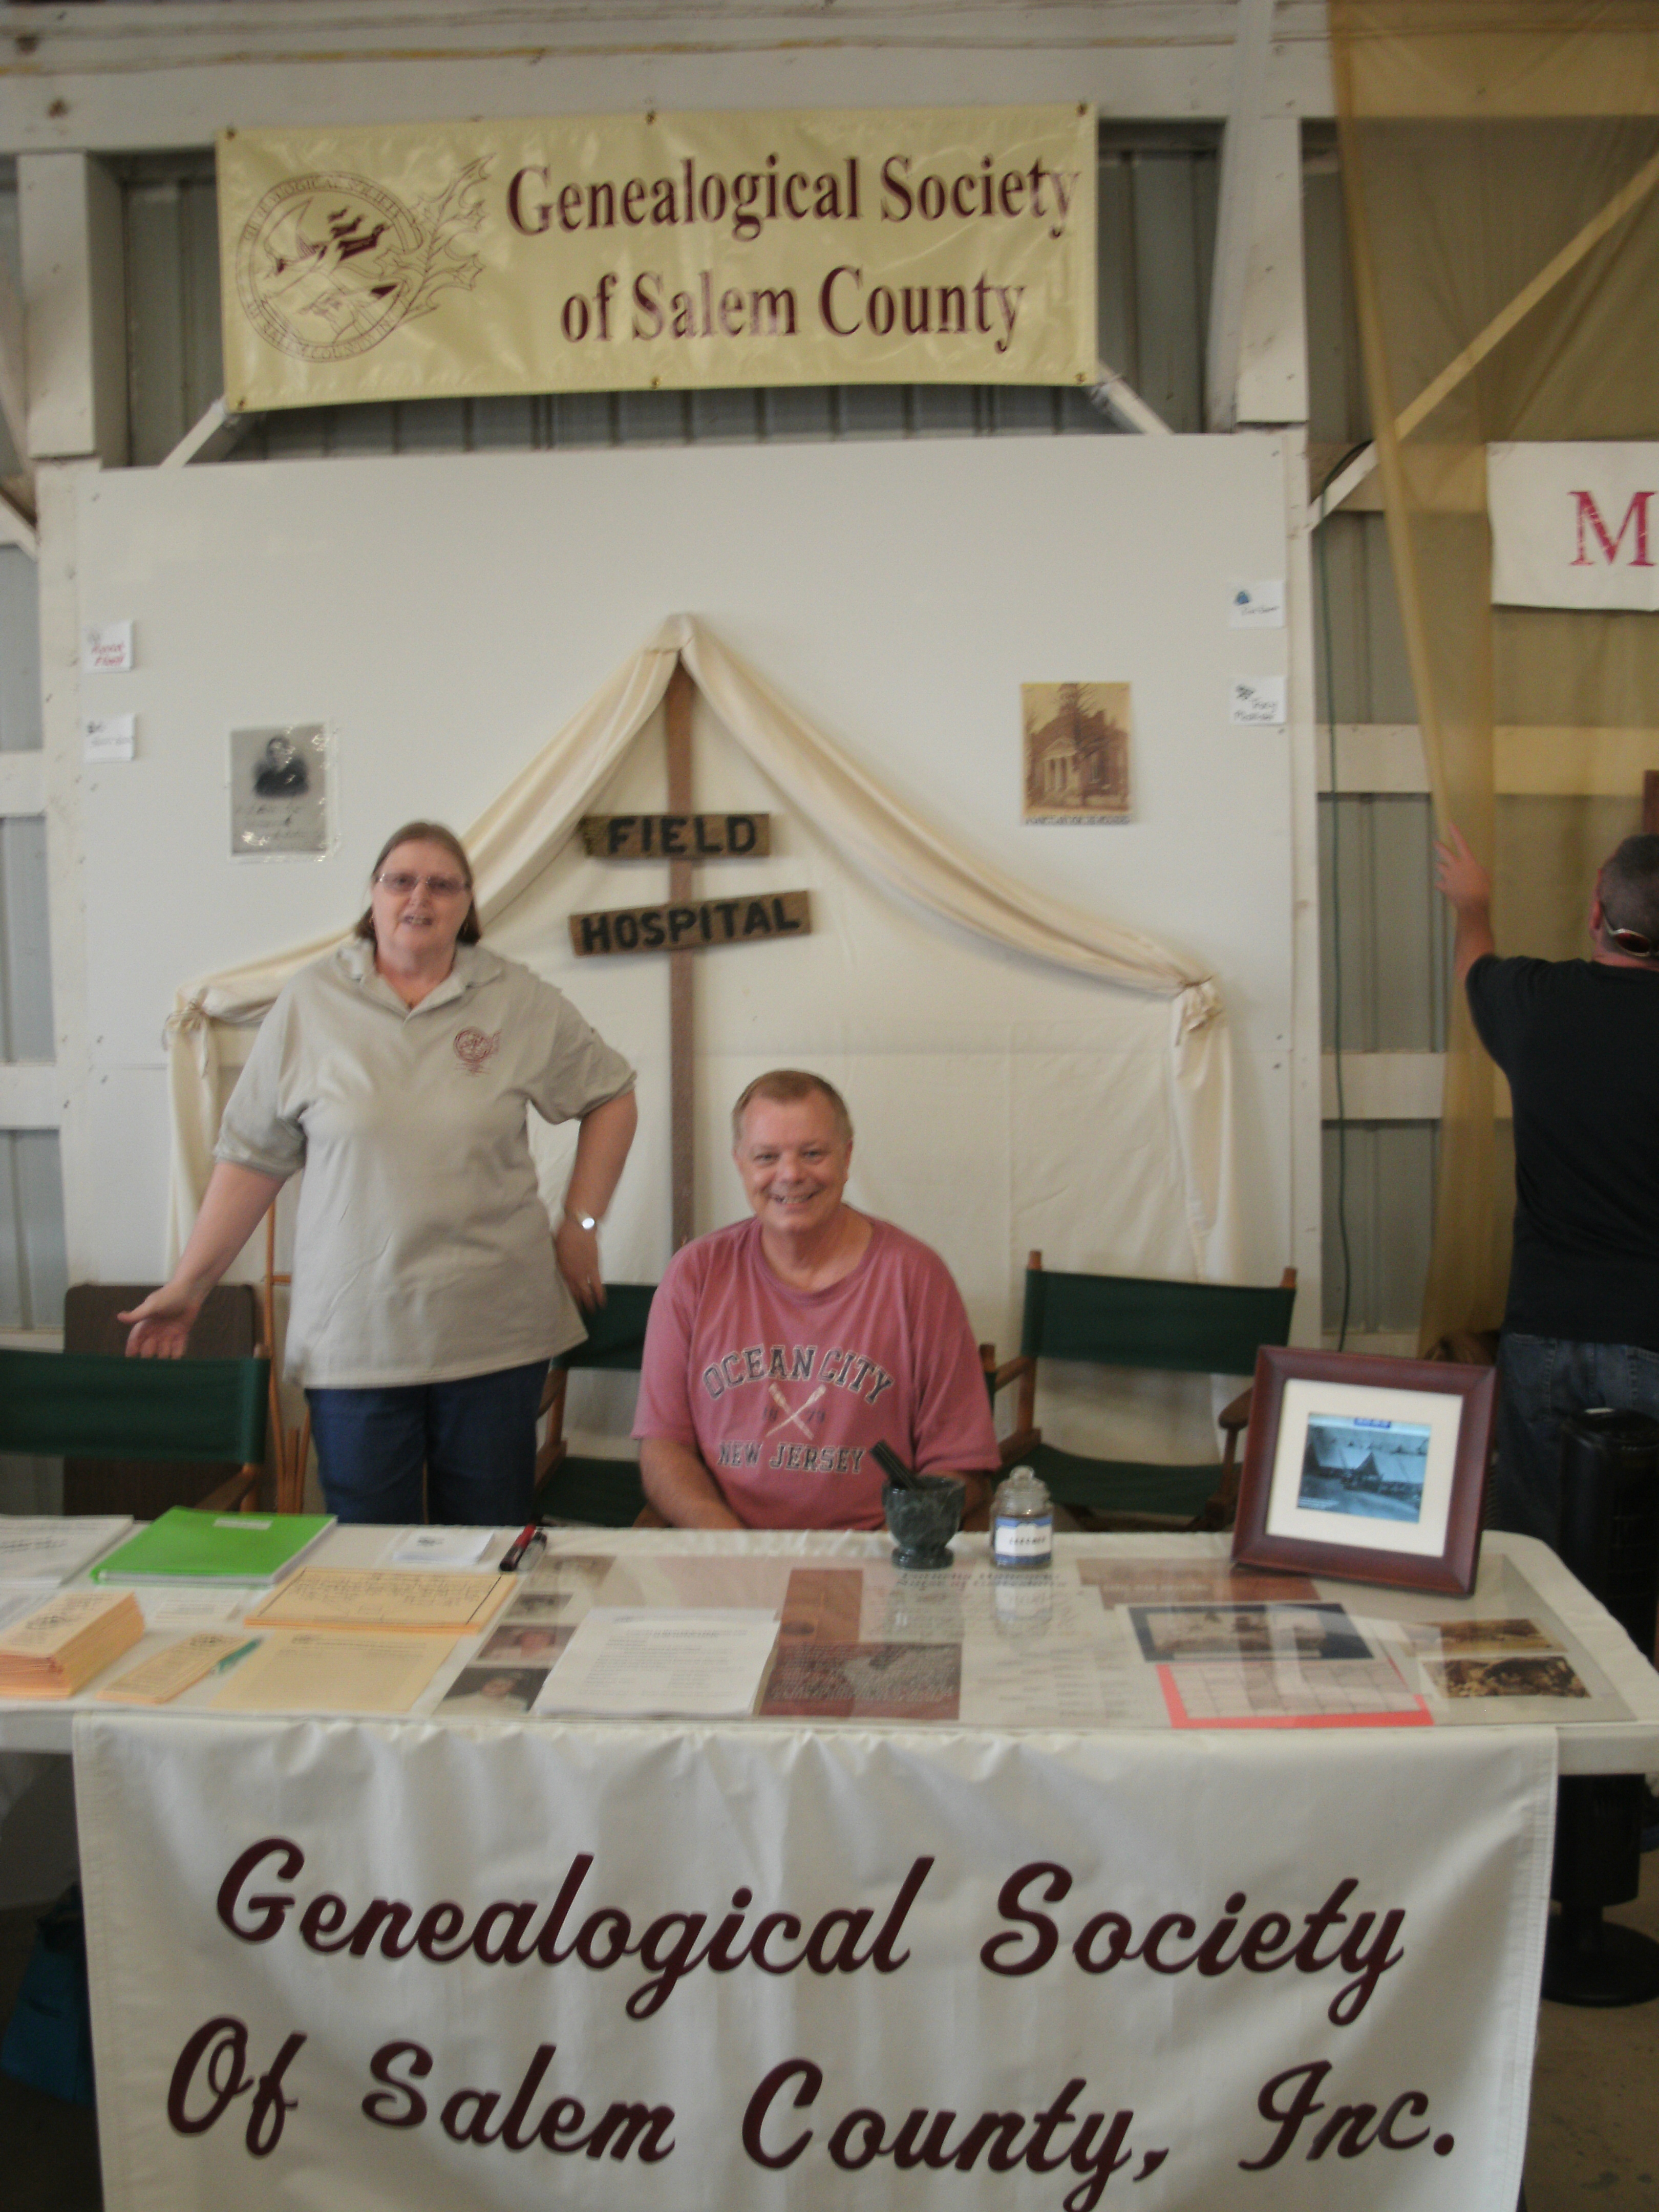 The Genealogical Society's booth at the Salem County Fair this year was modeled after a Civil War Hospital Tent.